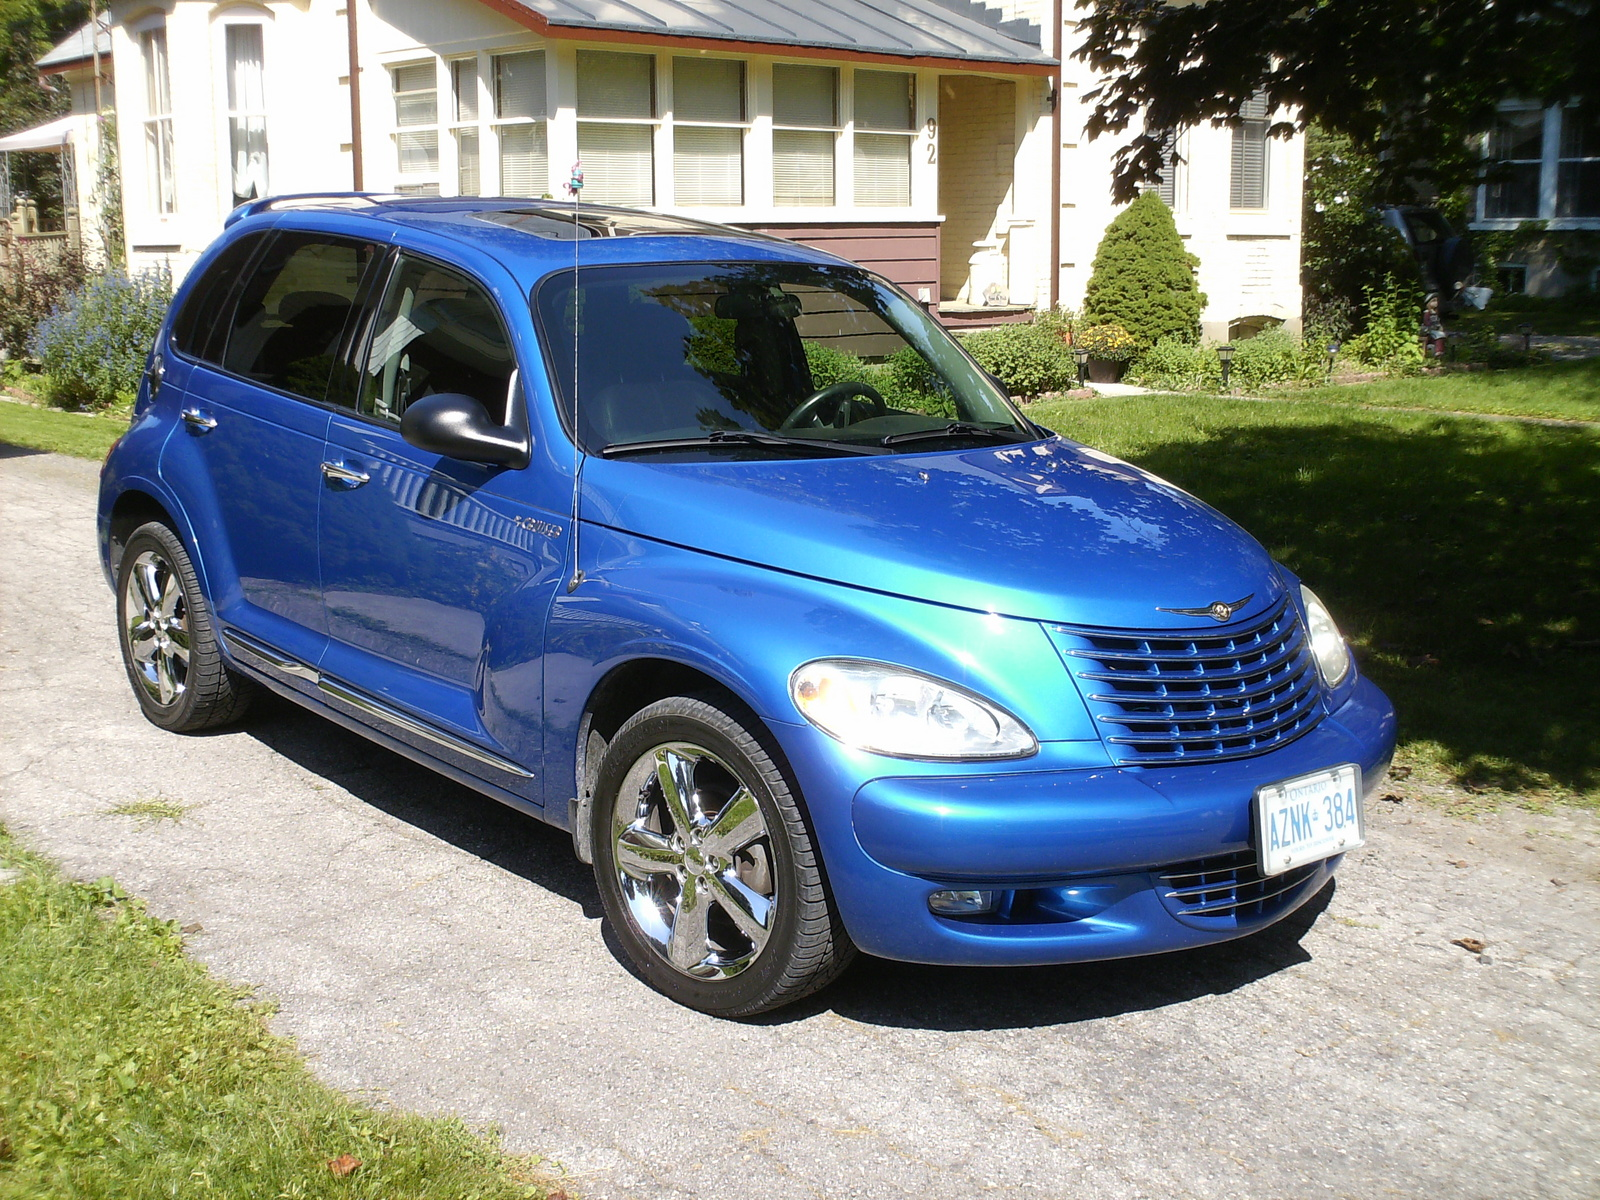 2004 chrysler pt cruiser gt picture exterior ford dealerships near me. Cars Review. Best American Auto & Cars Review